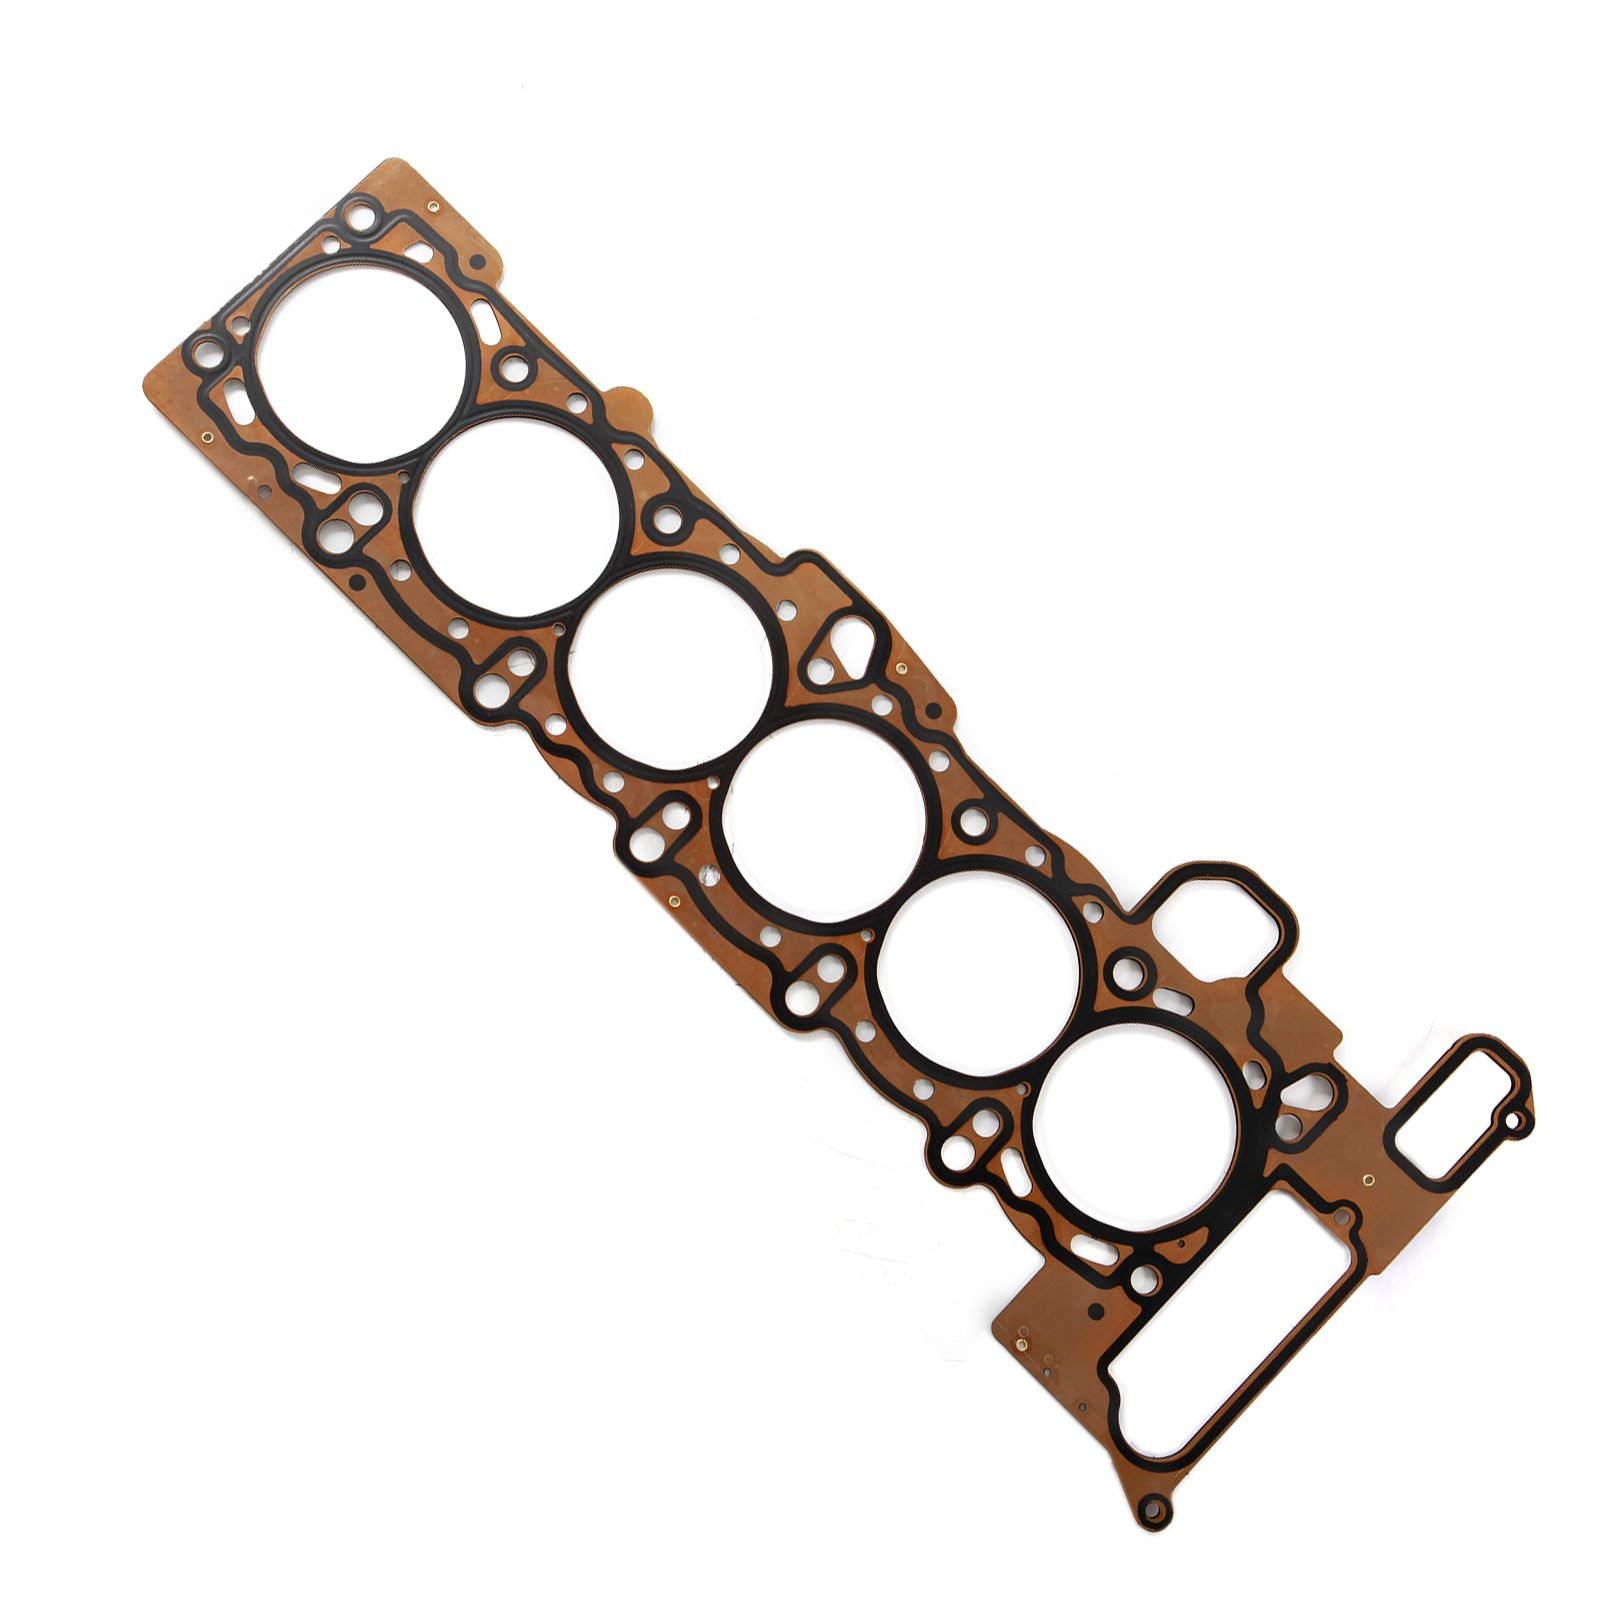 ECCPP Compatible fit for Cylinder Head Gasket Set fit 1999-2005 BMW E39 E46 325i 330i 525i 530i Automotive Replacement Engine Gaskets